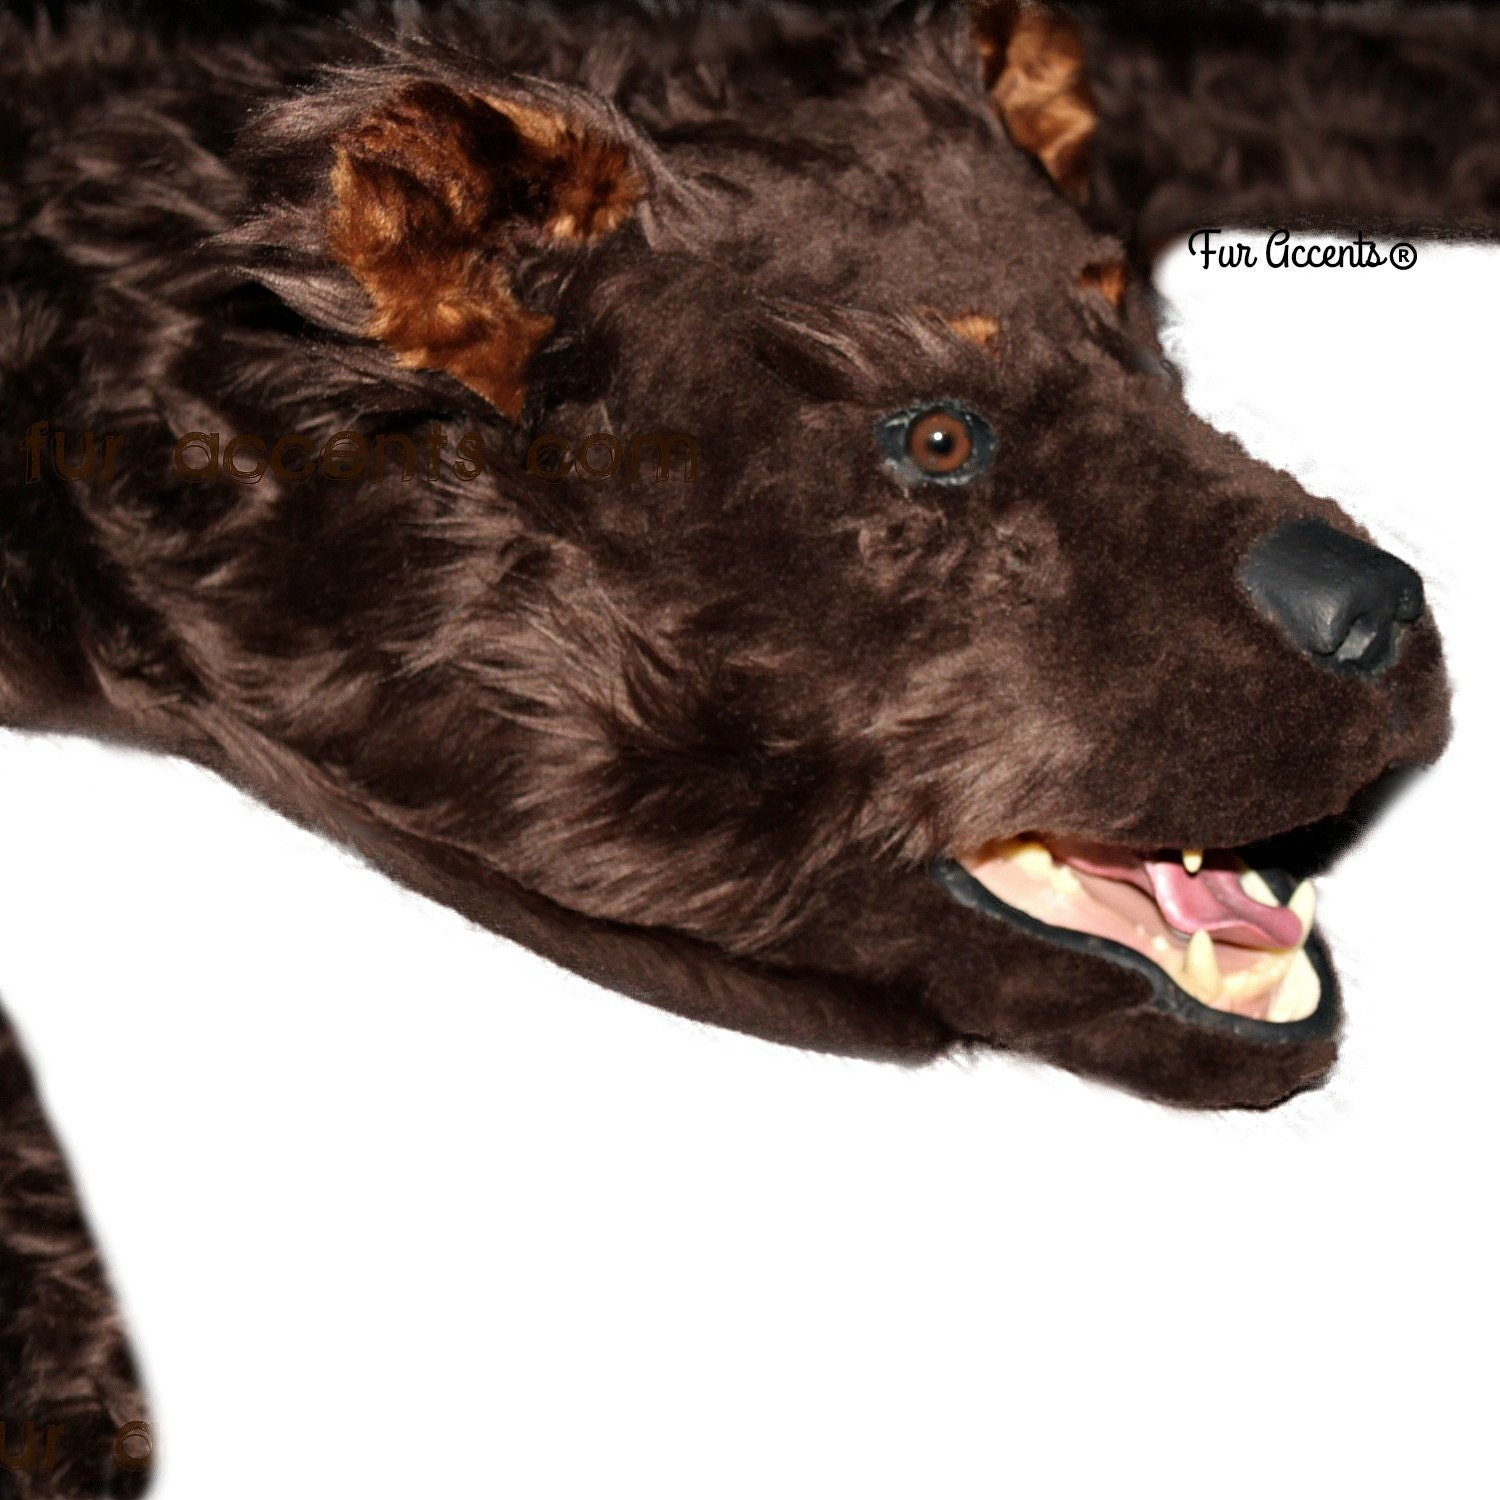 Bear Skin Rug, Life Size, Realistic Faux Fur, Brown